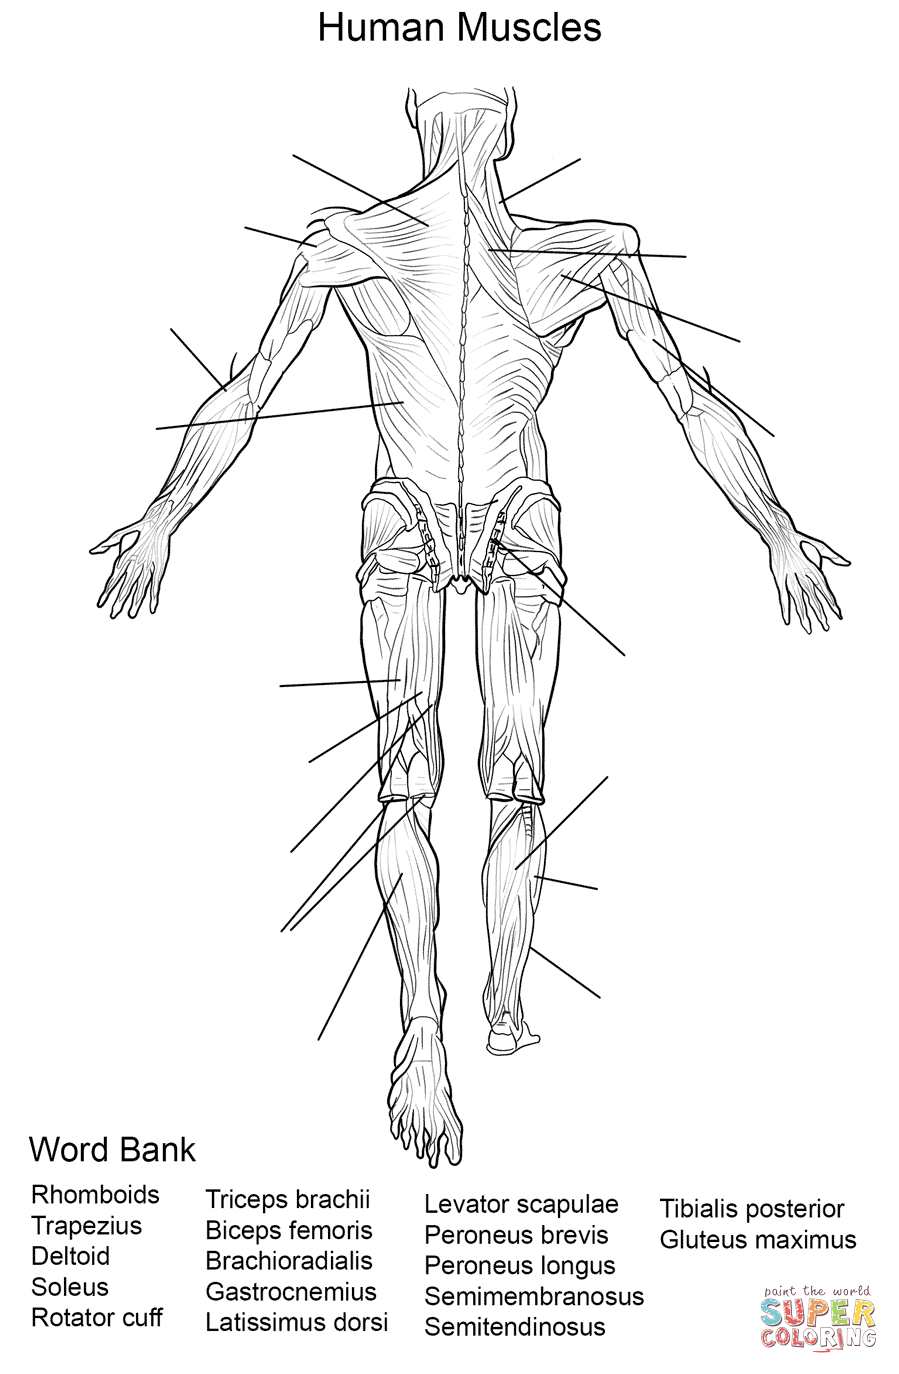 Human Muscles Back View Worksheet Coloring Page | Free Printable - Free Printable Human Anatomy Worksheets